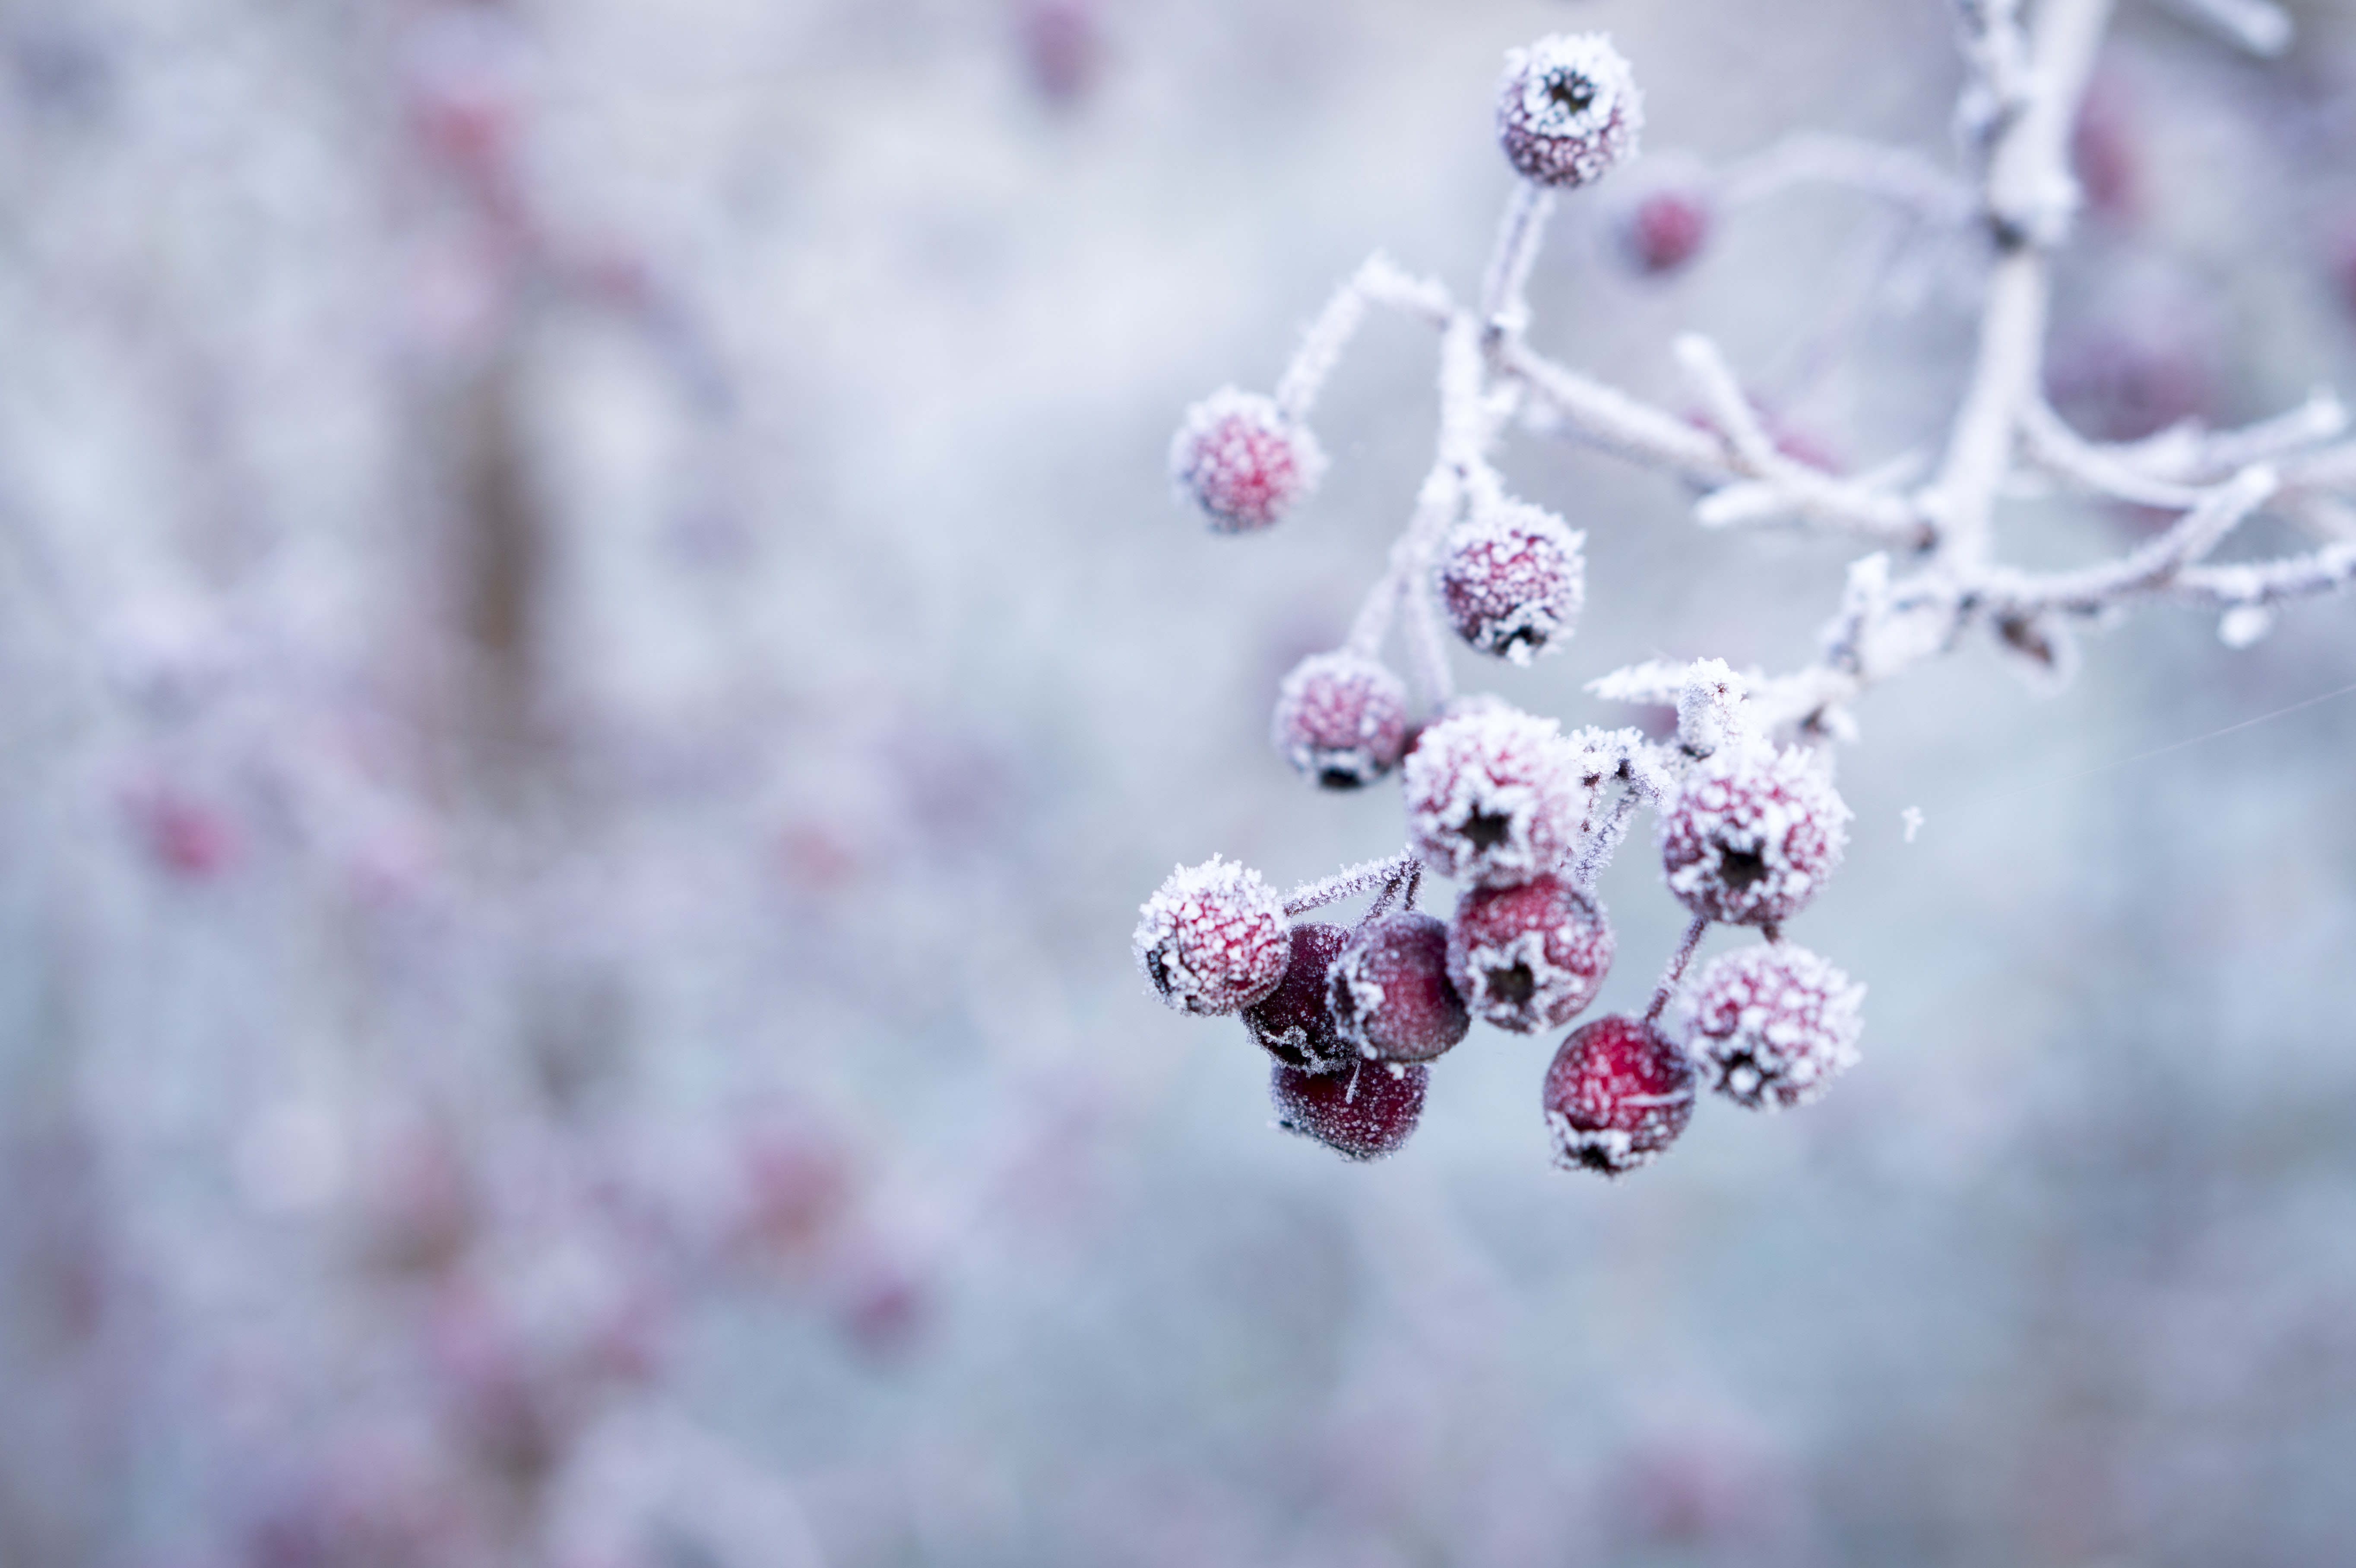 selective focus photo of frozen round red fruits